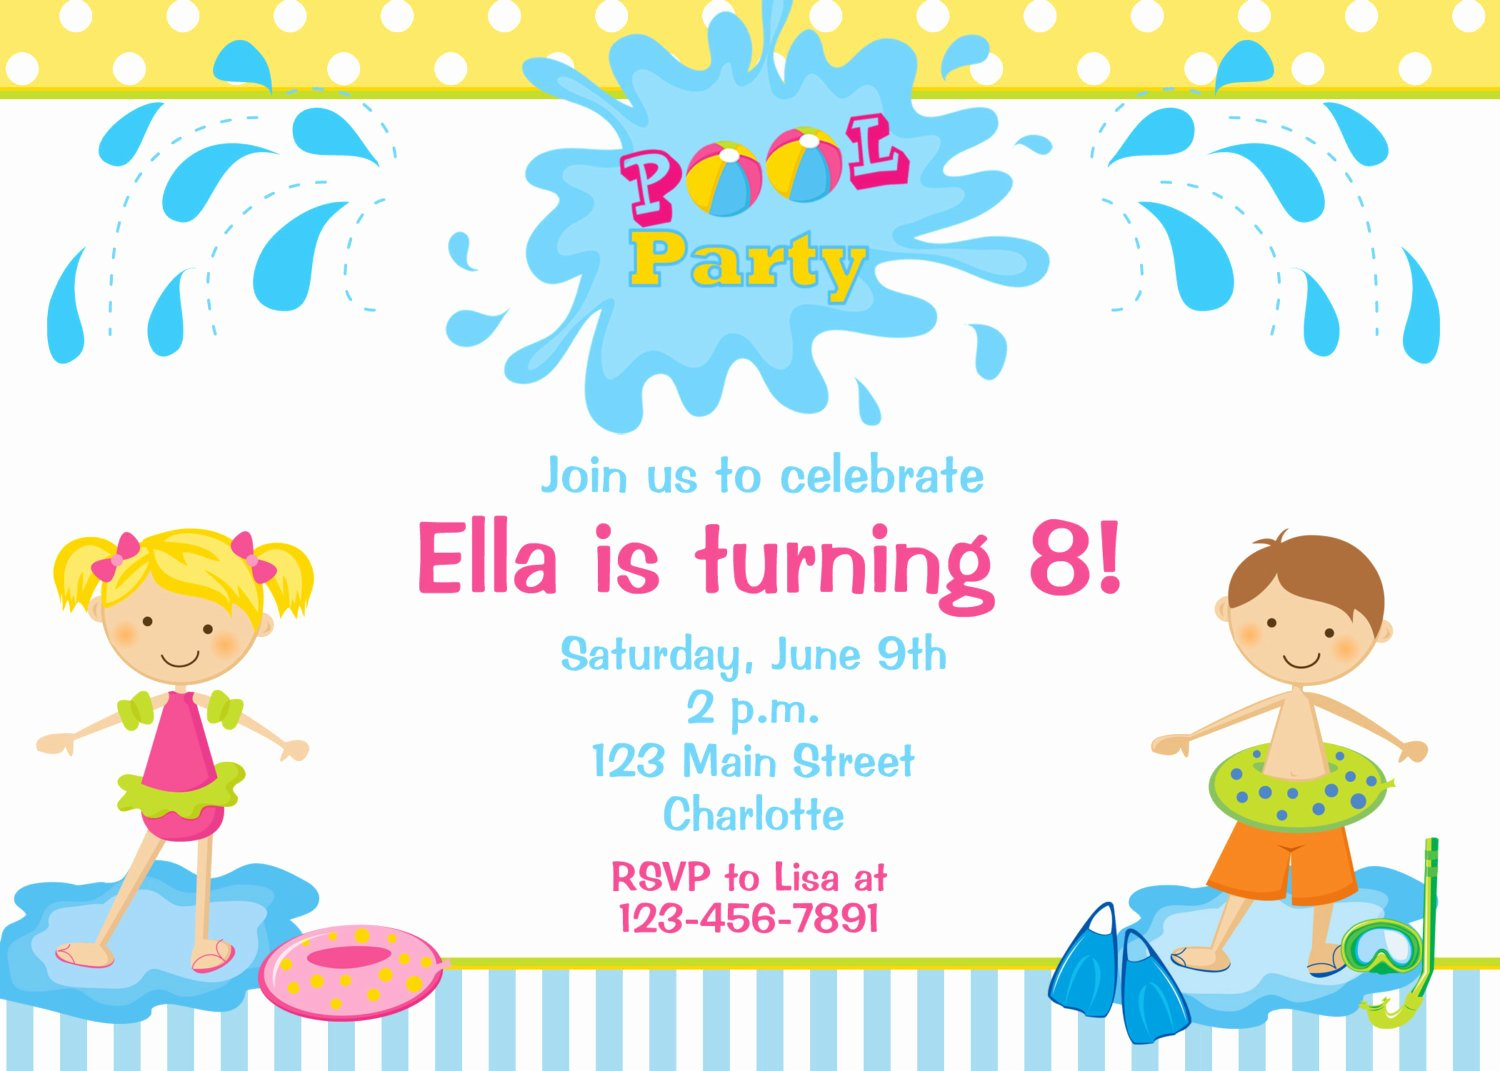 Pool Party Invite Template Fresh Pool Party Birthday Invitation Pool Party by thebutterflypress